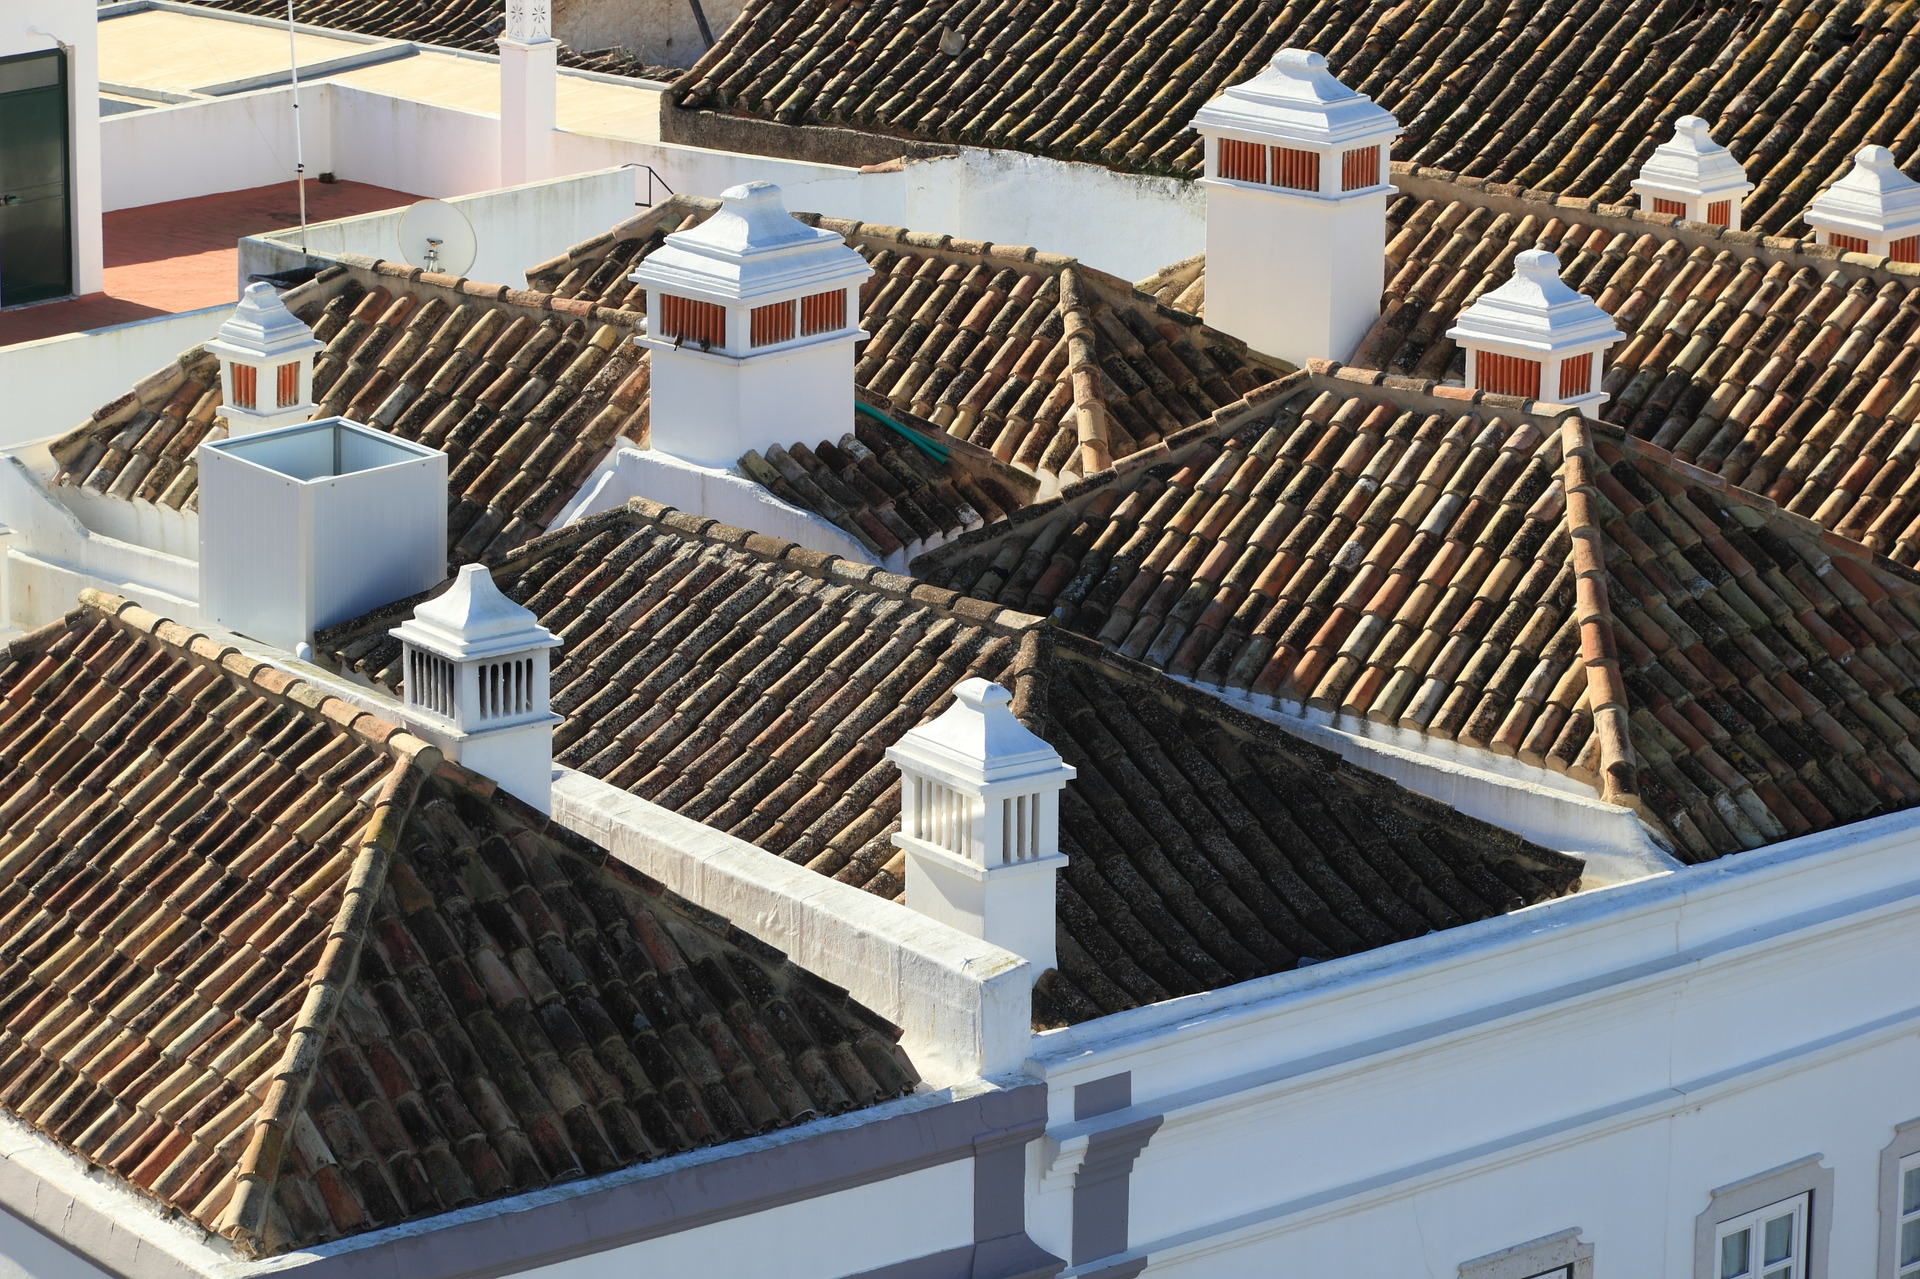 Rooftops in Faro | © olafpictures / pixabay